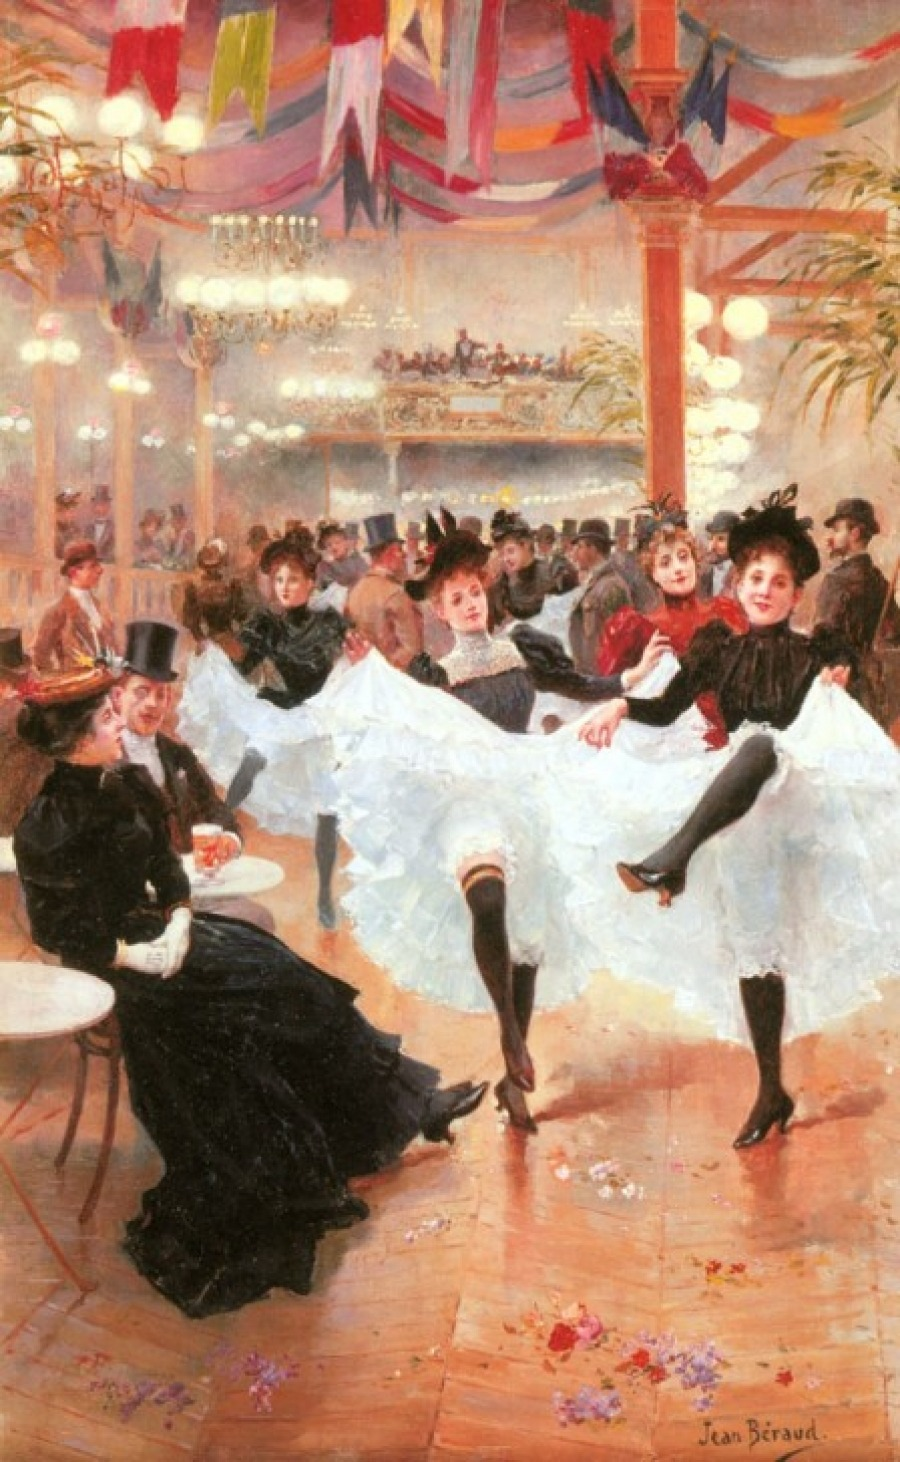 Jeune Le Cafe de Paris. Jean Béraud (French, Impressionism, 1849–1935). Oil on canvas.  Béraud had an exceptional eye for detail, enhanced by the advent of photography. This vision imbued his portrayals of daily Parisian life with subtlety and elegance. He remained in his beloved, flamboyant Belle Époque city while his Impressionist contemporaries moved to the country. Béraud would often sequester himself in a taxicab to paint candid images of unsuspecting passersby and mundane, everyday activities.